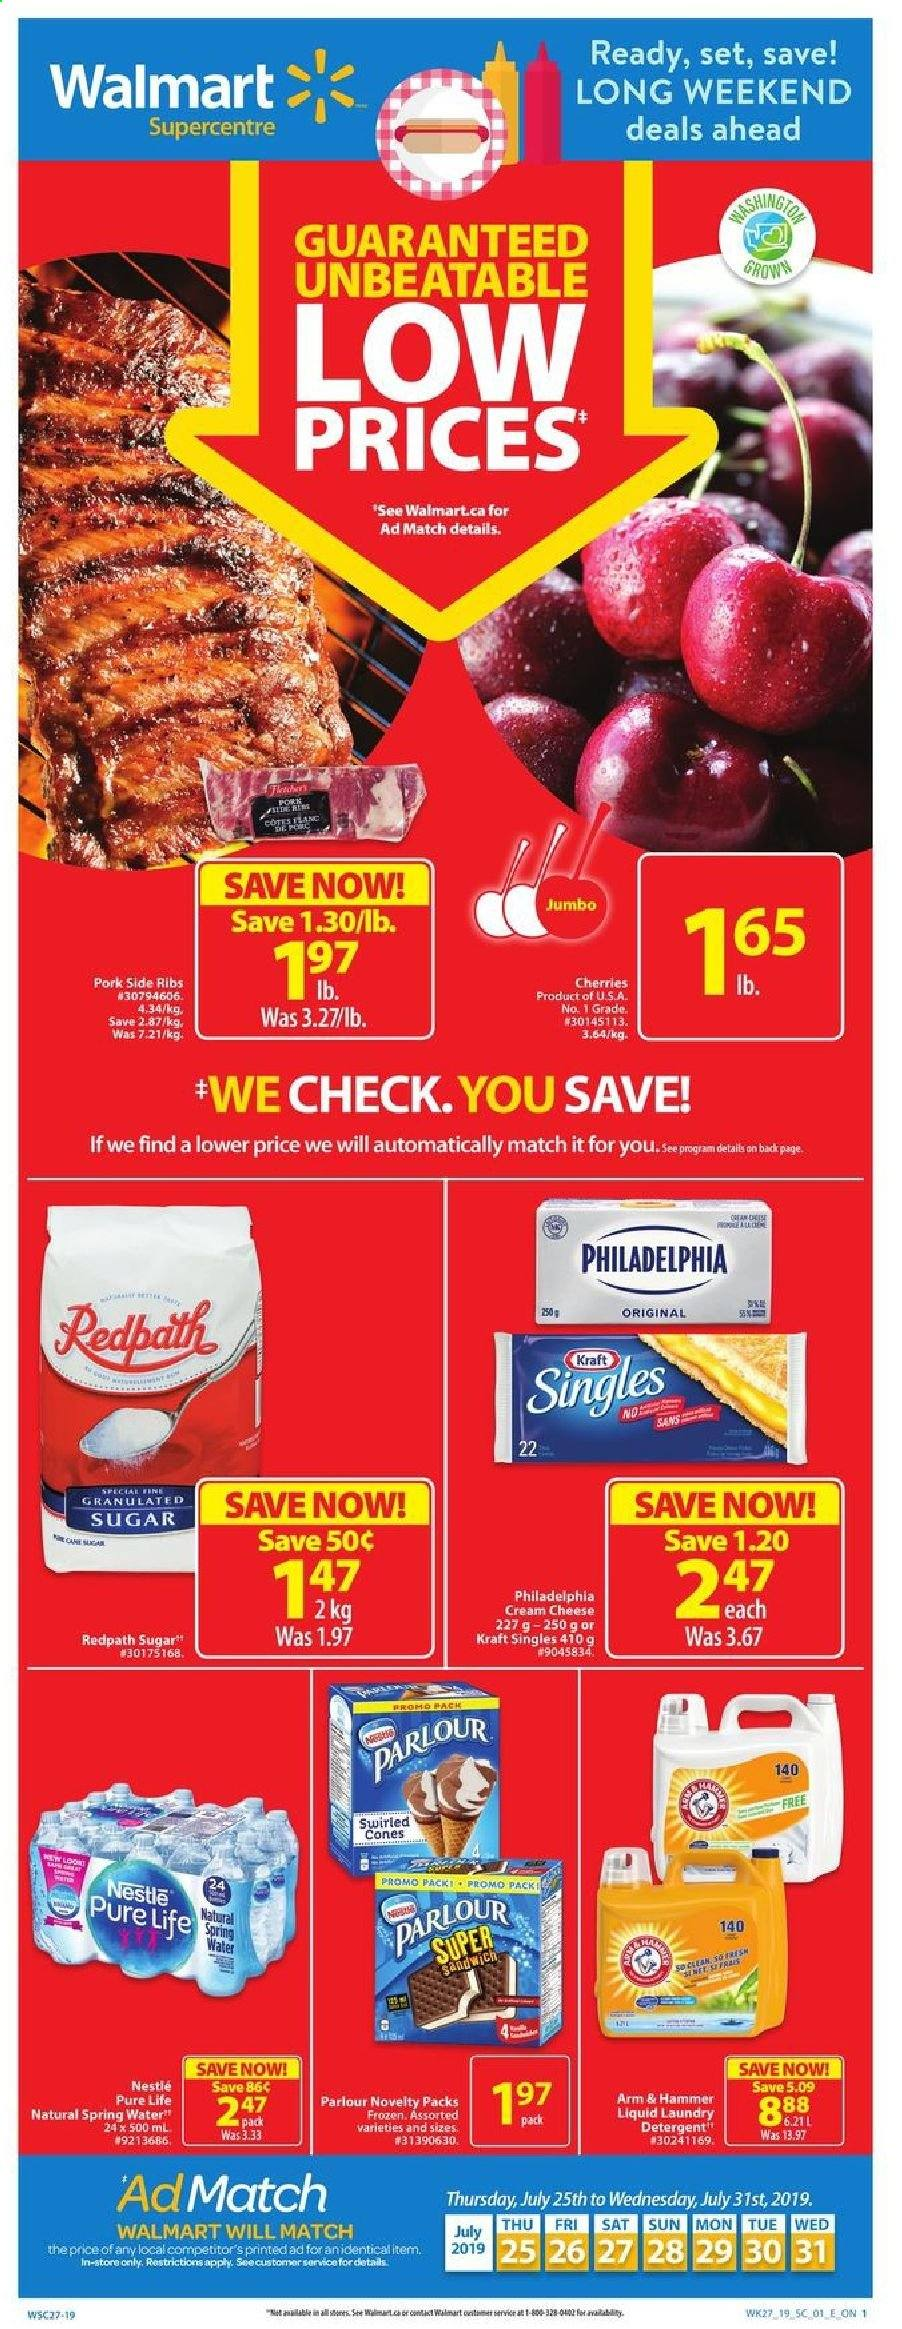 Walmart Flyer - July 25, 2019 - July 31, 2019 - Sales products - cream, cream cheese, detergent, frozen, granulated sugar, nestlé, spring water, sugar, table, philadelphia, pork meat, cherries, cheese, sandwich, hammer, ribs. Page 1.